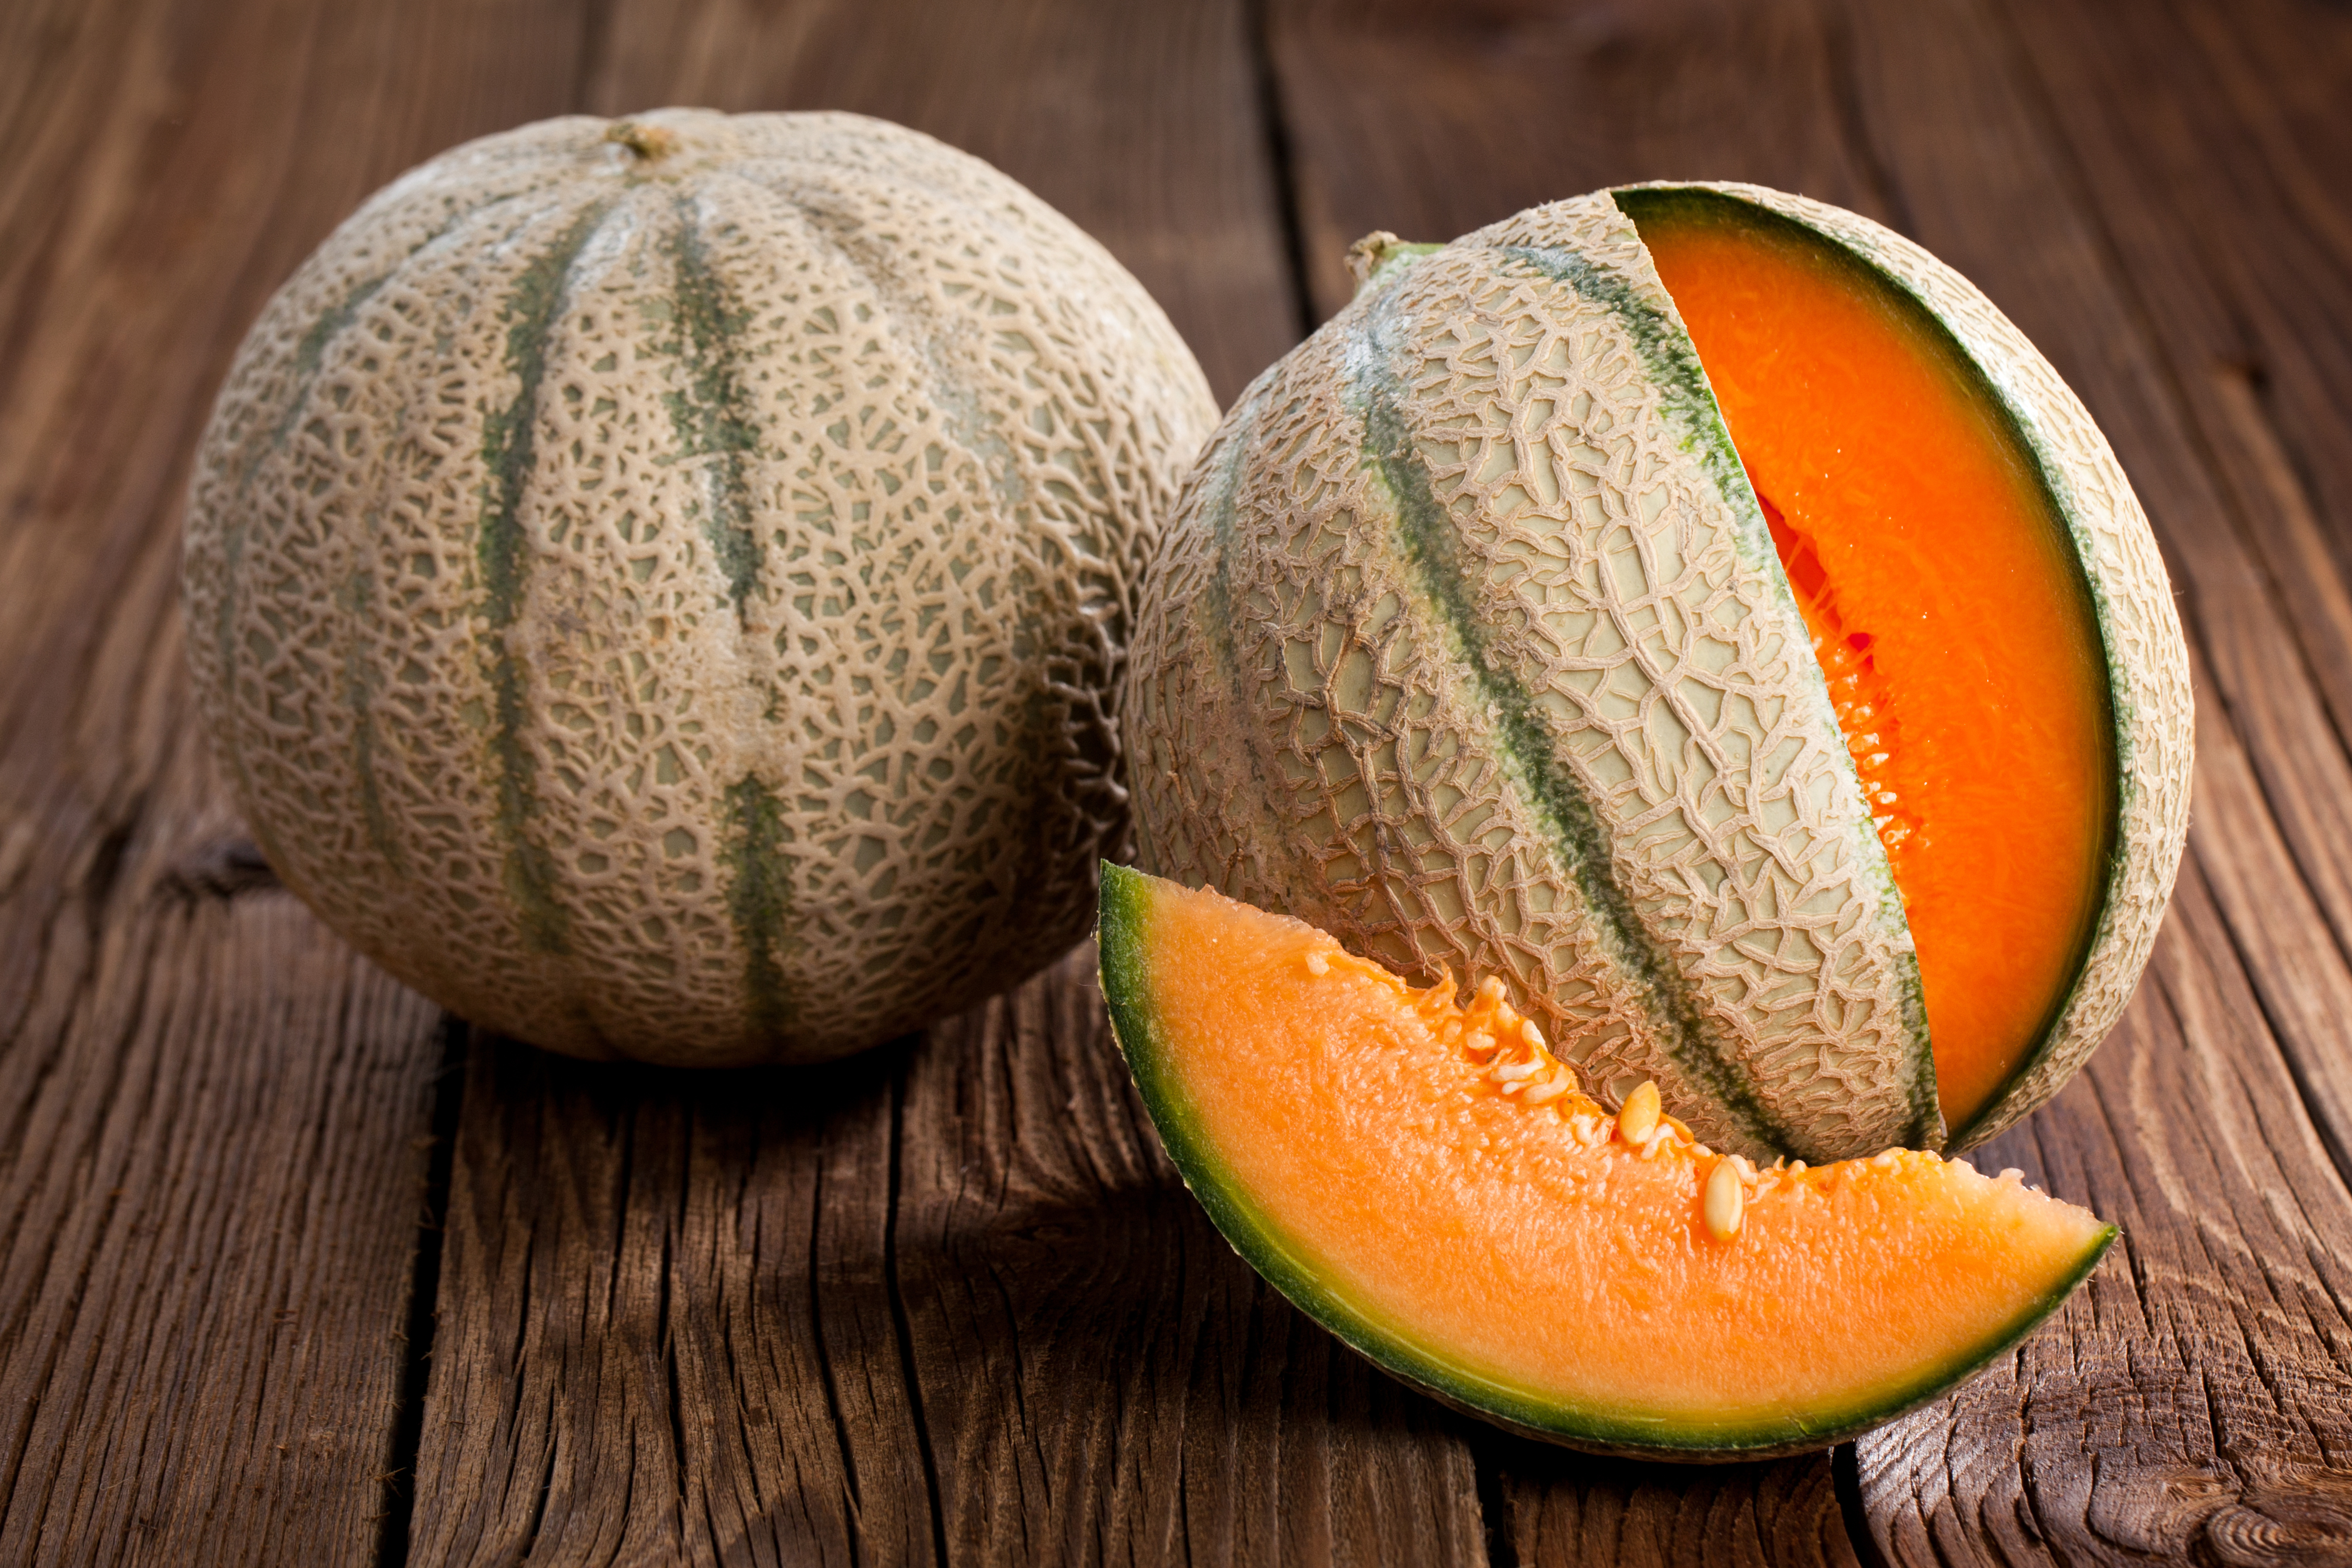 Melon is a berry or fruit 45